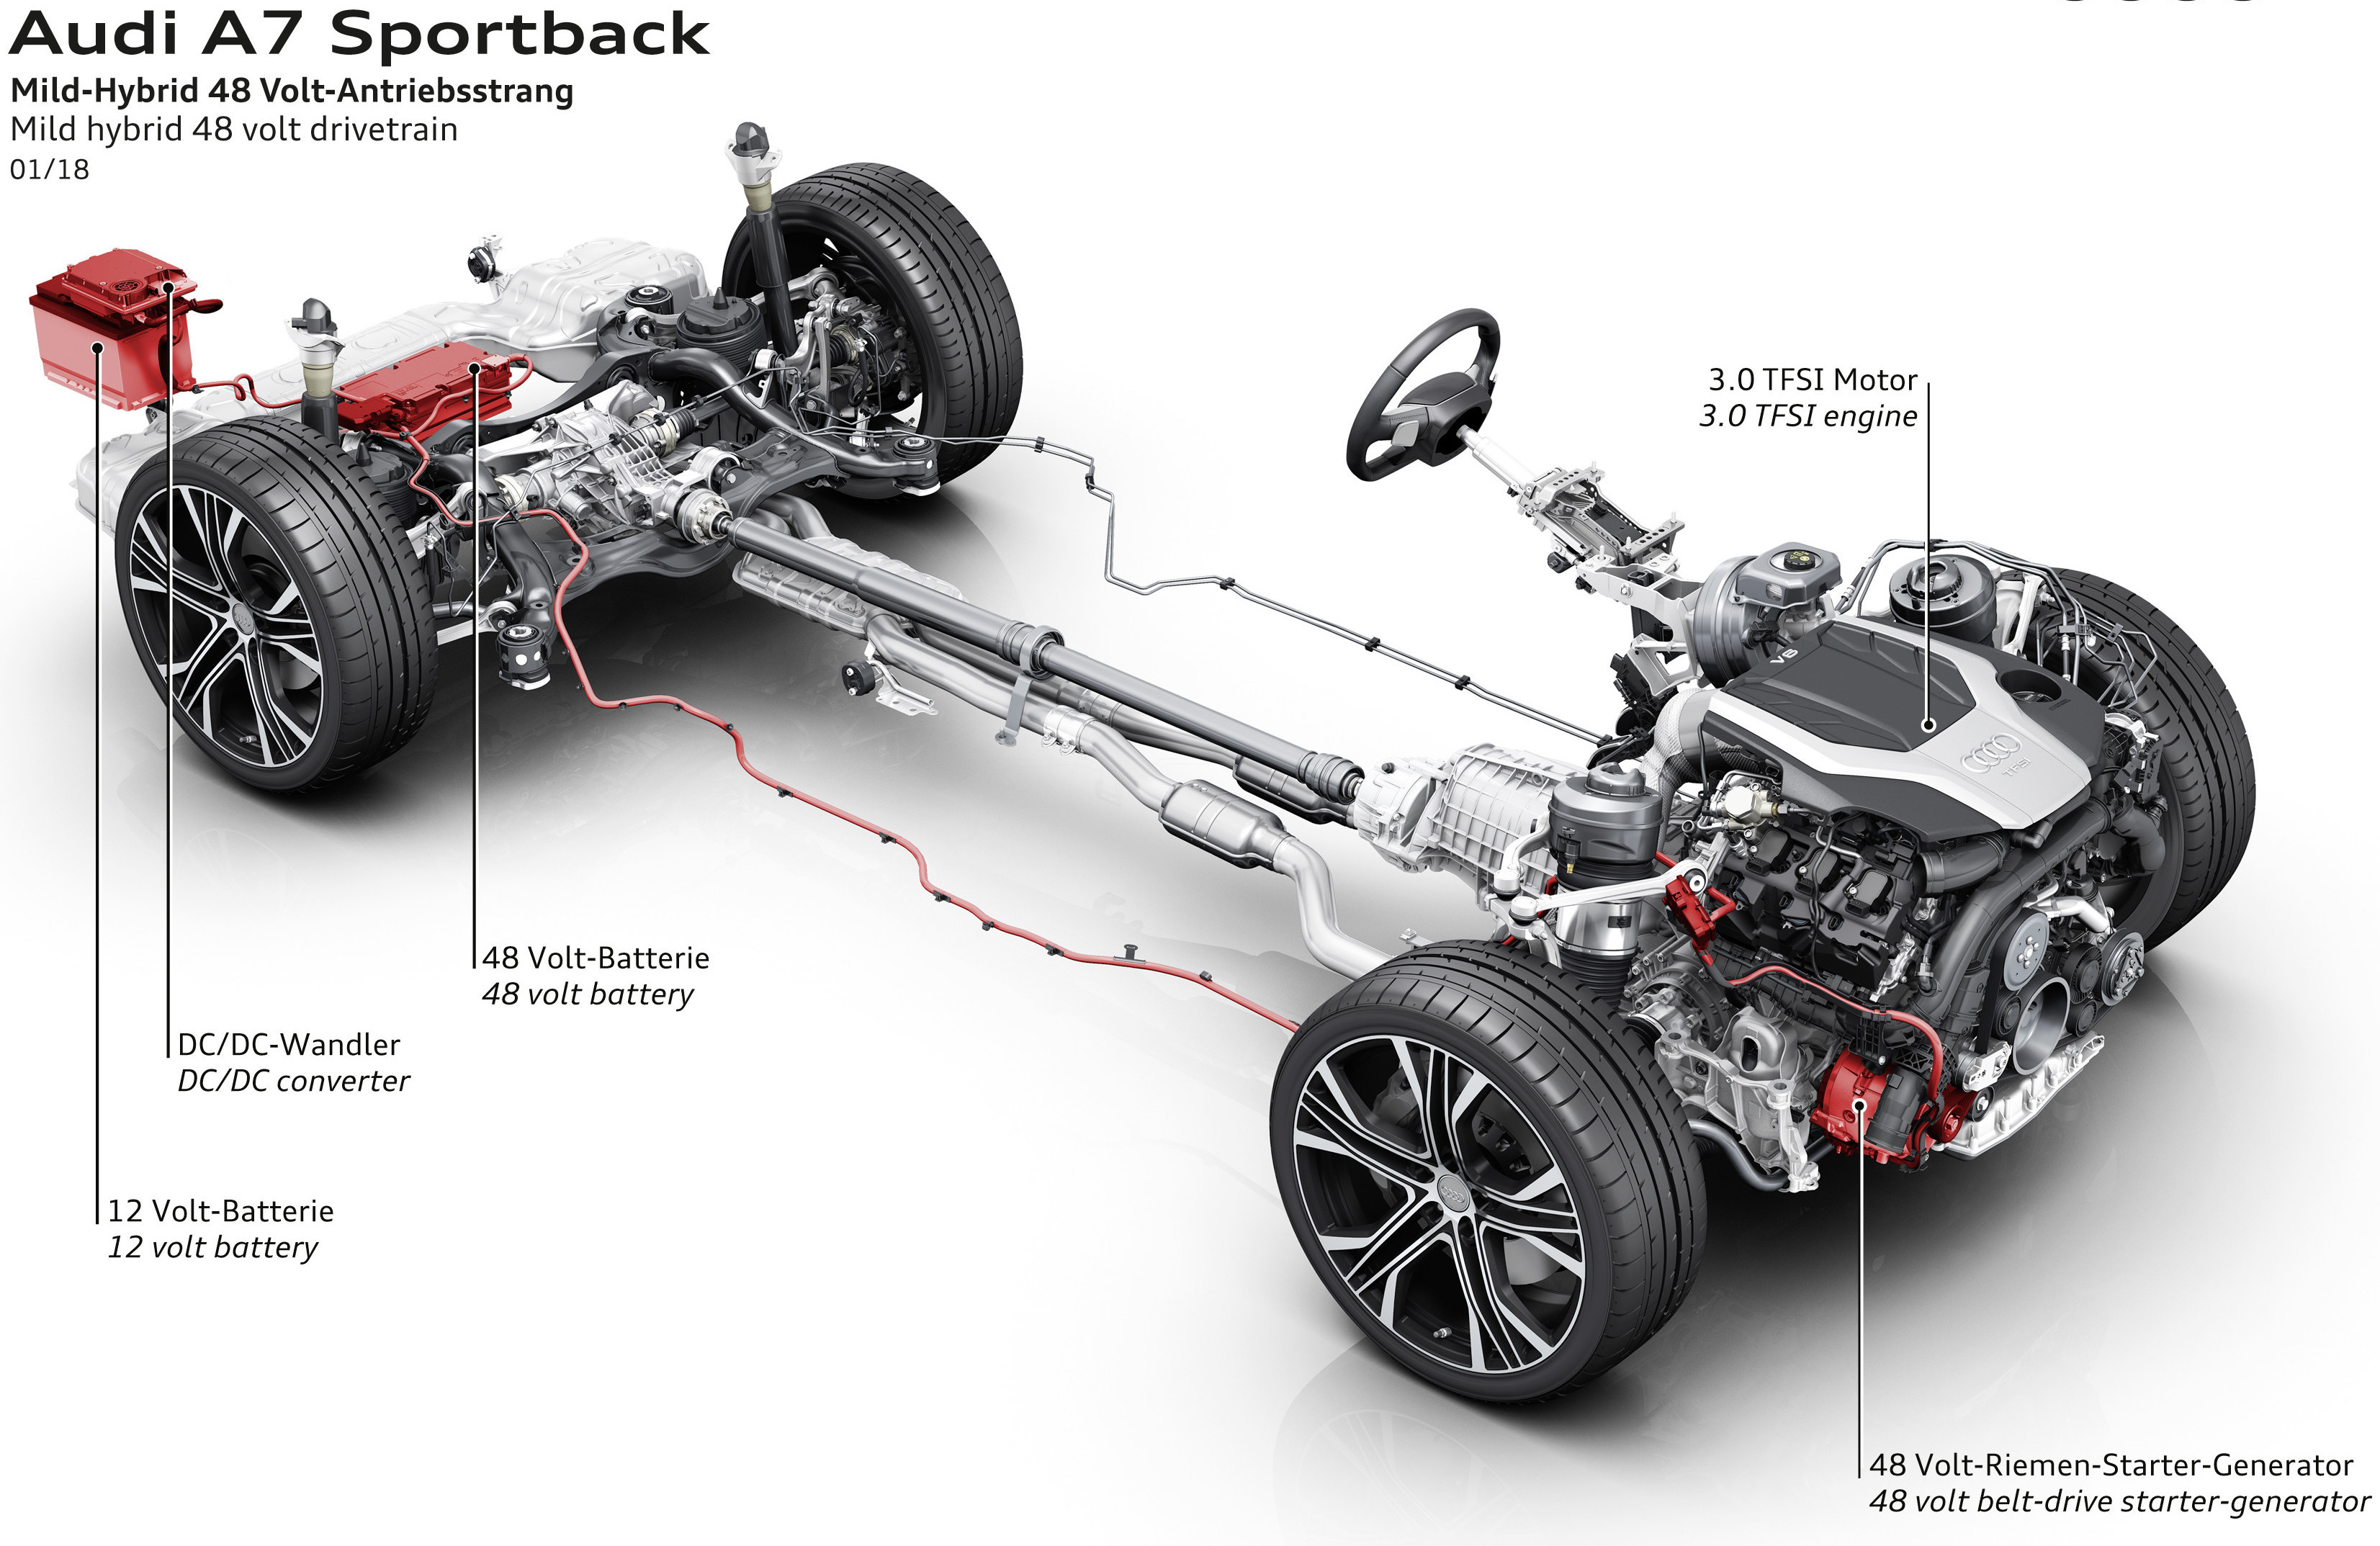 photo image Second-generation Audi A7 Sportback features standard 48V MHEV system with gasoline or diesel engines